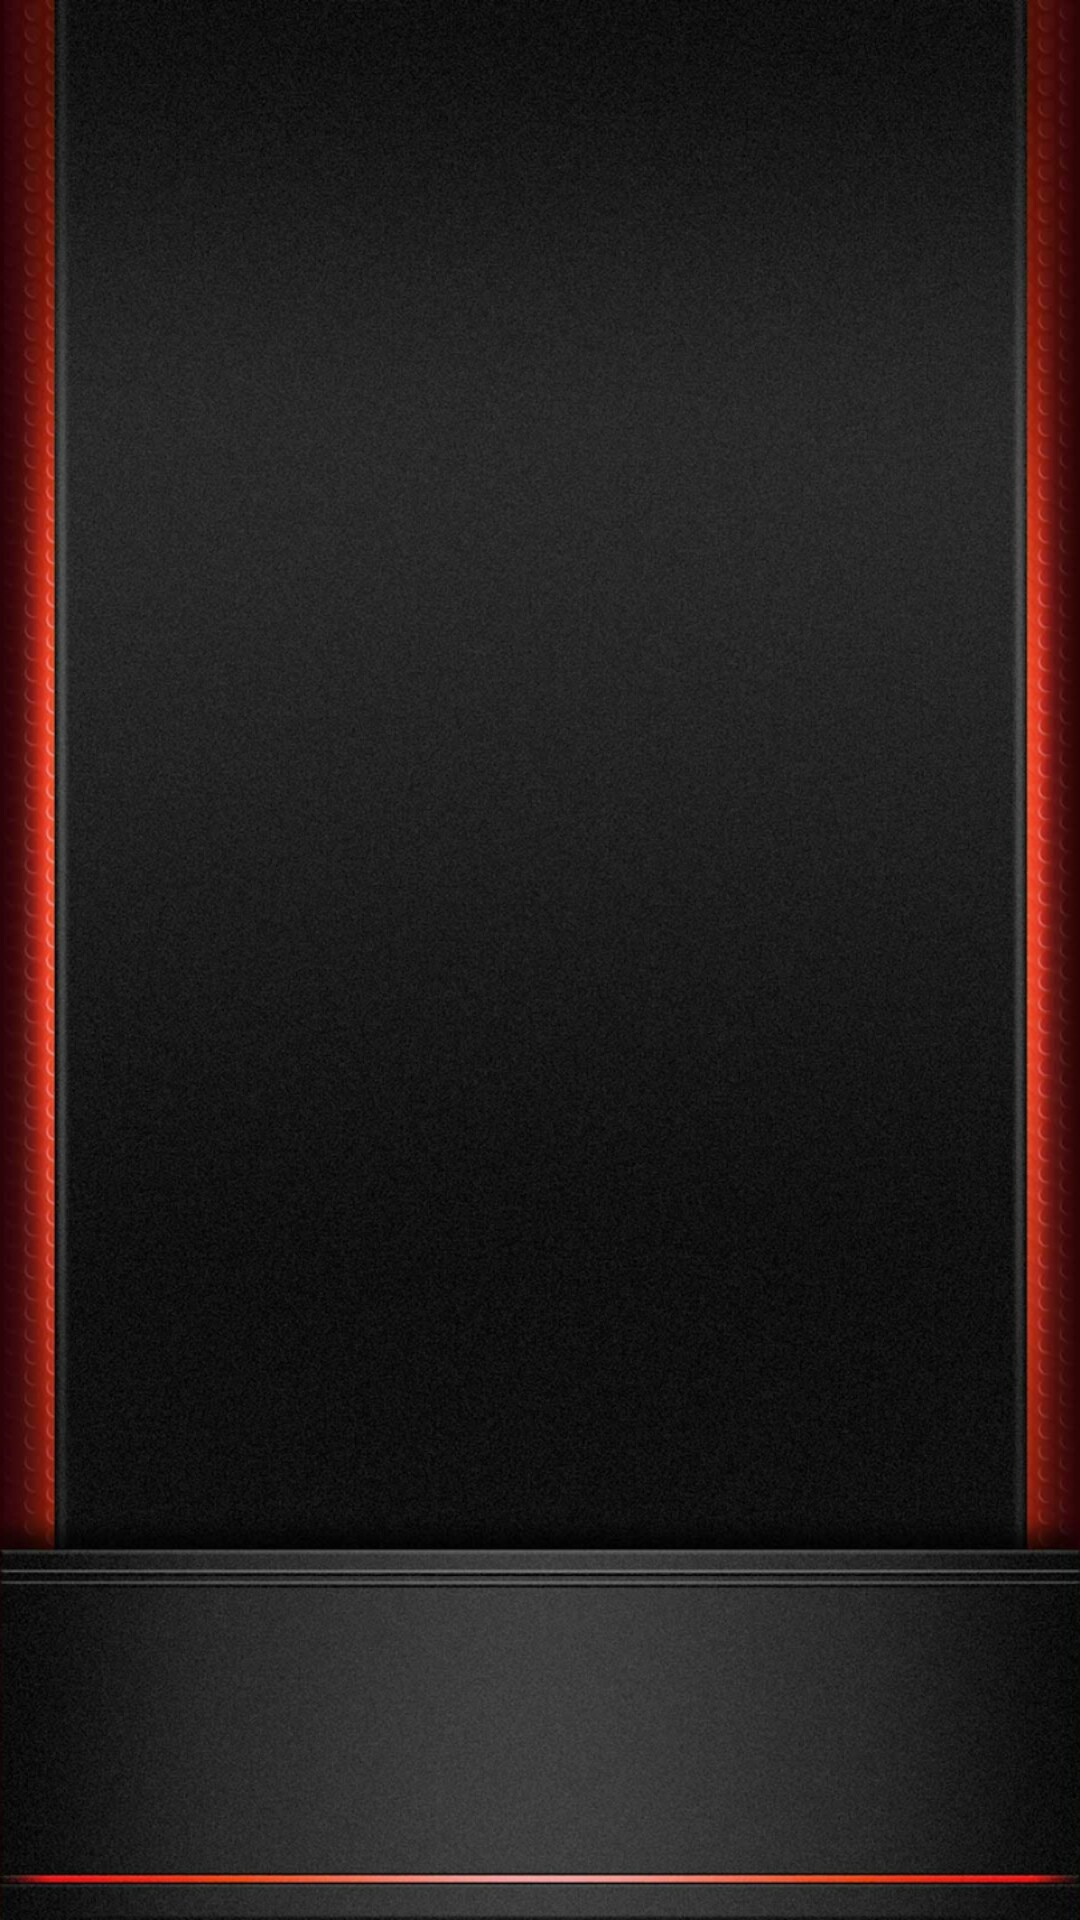 Red Phone Wallpaper 71 Images